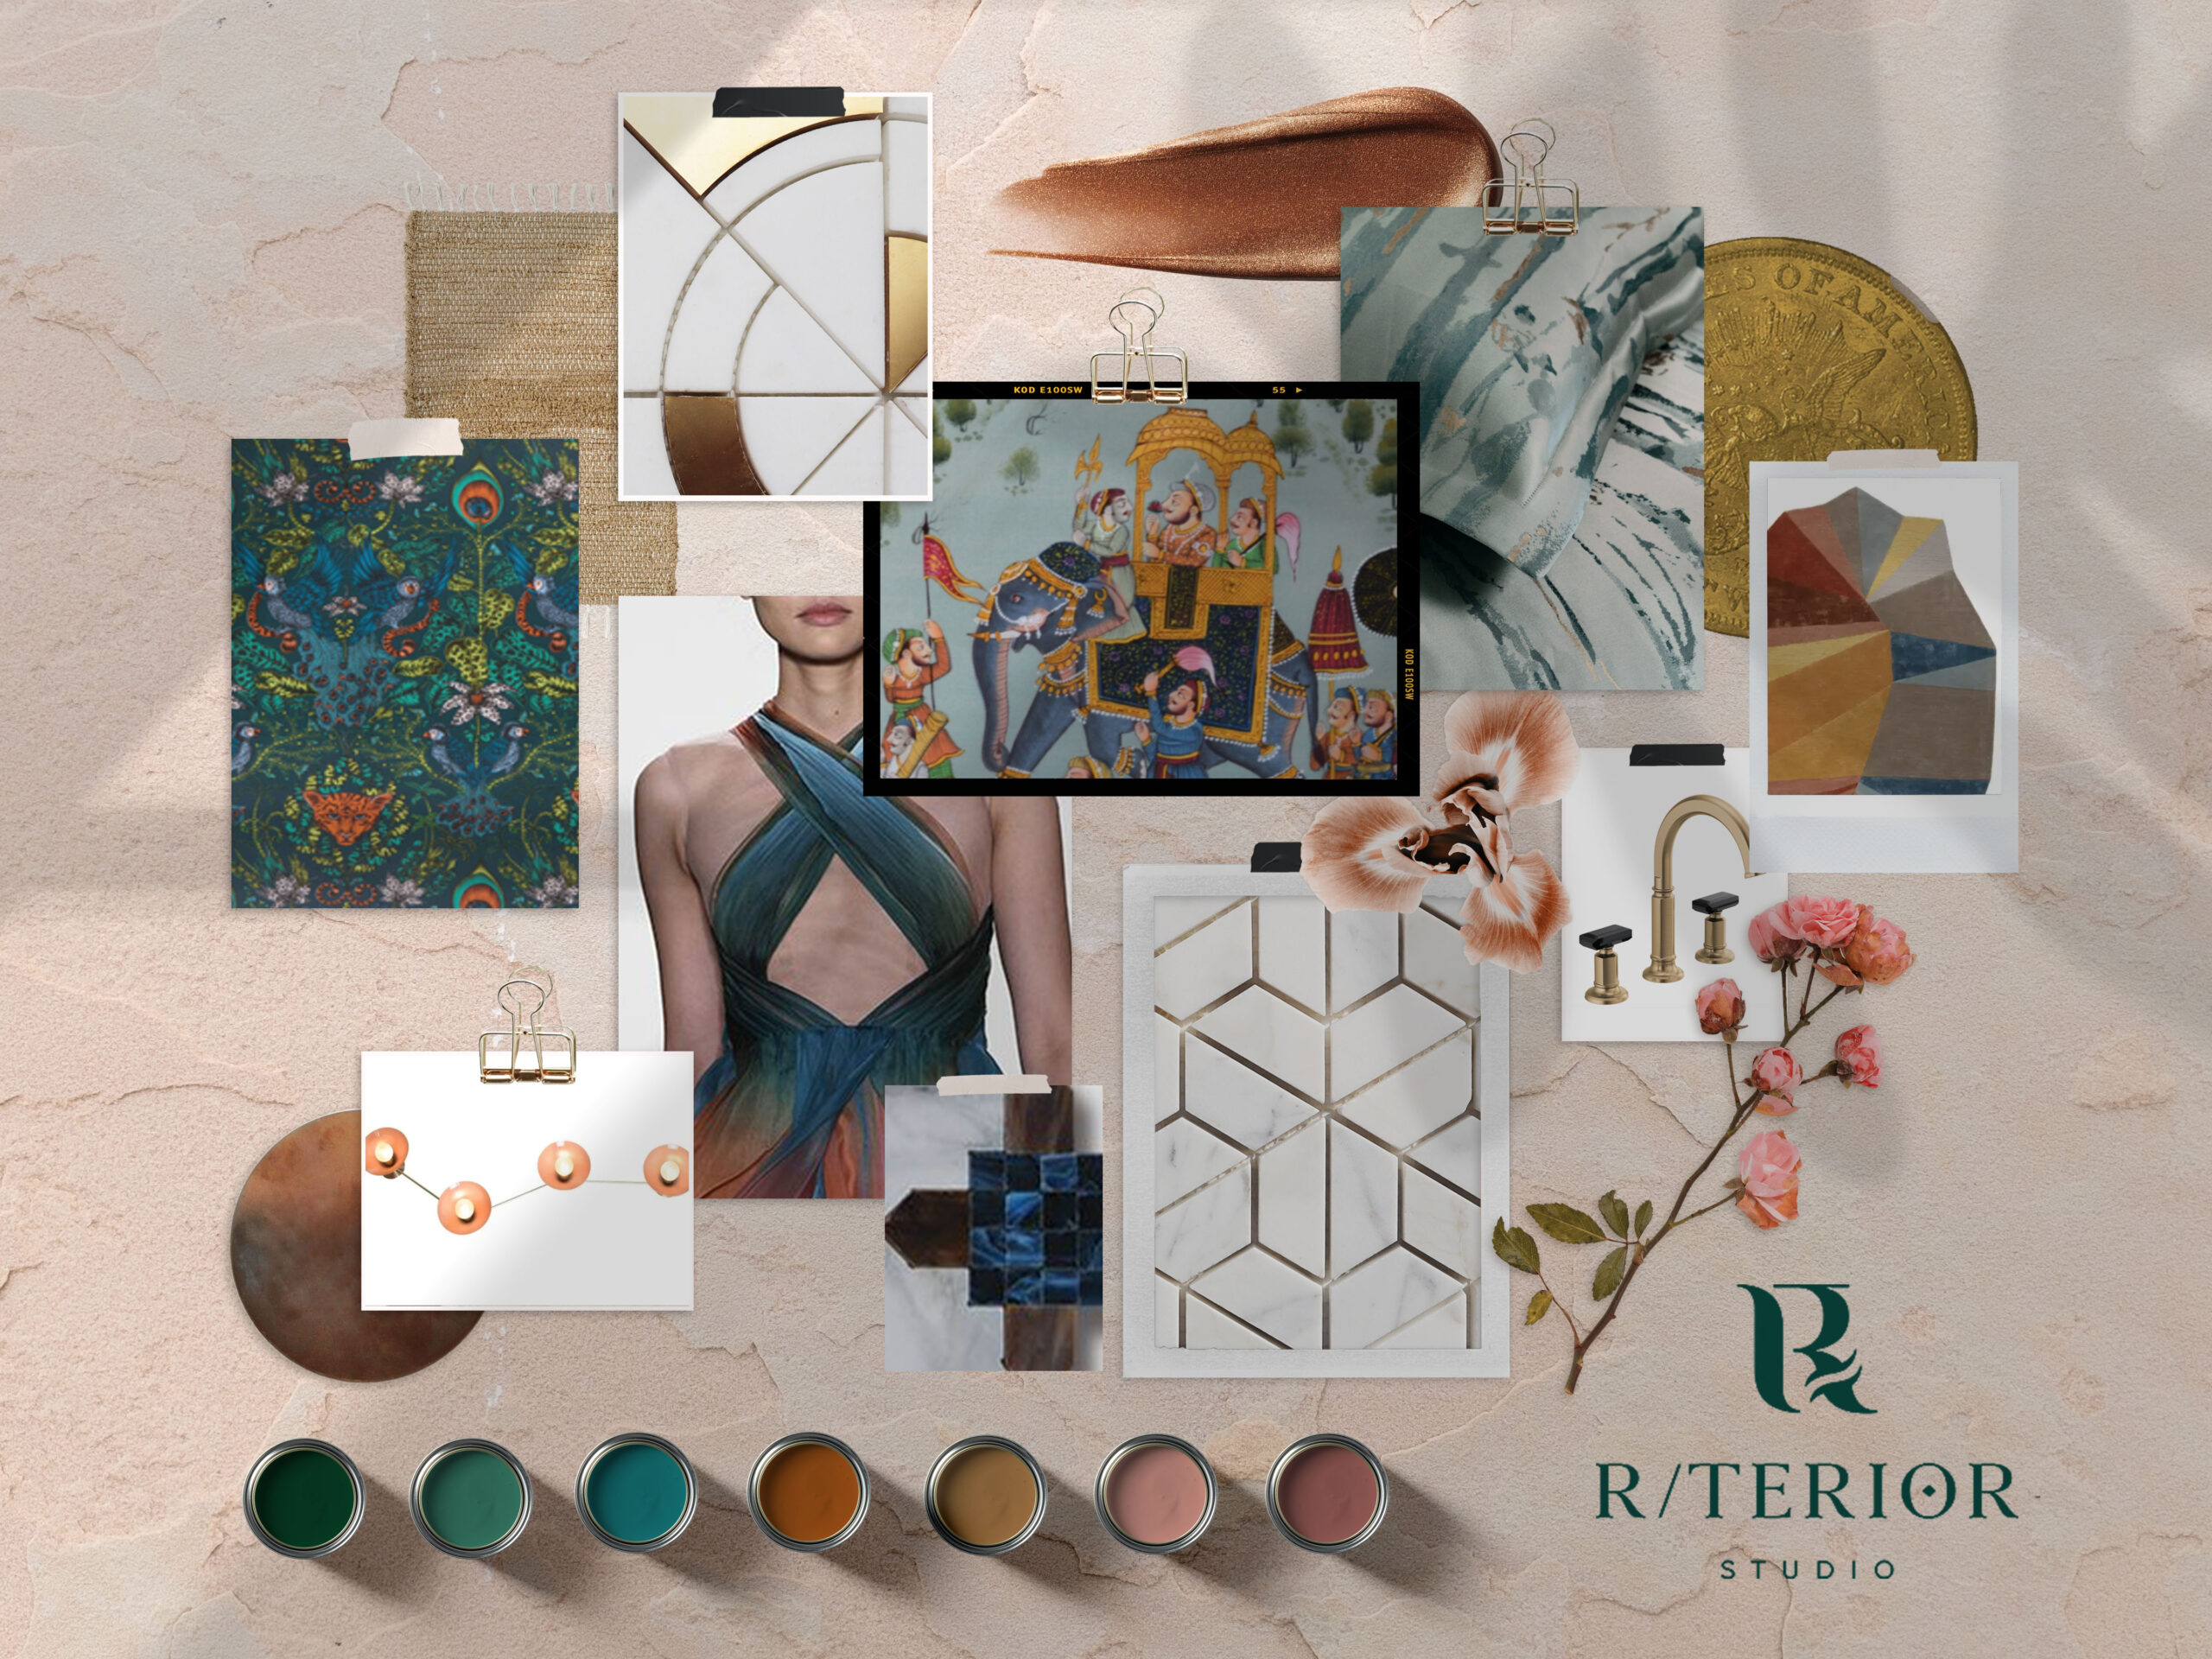 rterior-studio-hollywood-la-Kaleidoscope-Project-moodboard-floral-inspired-metallic-accents-scaled